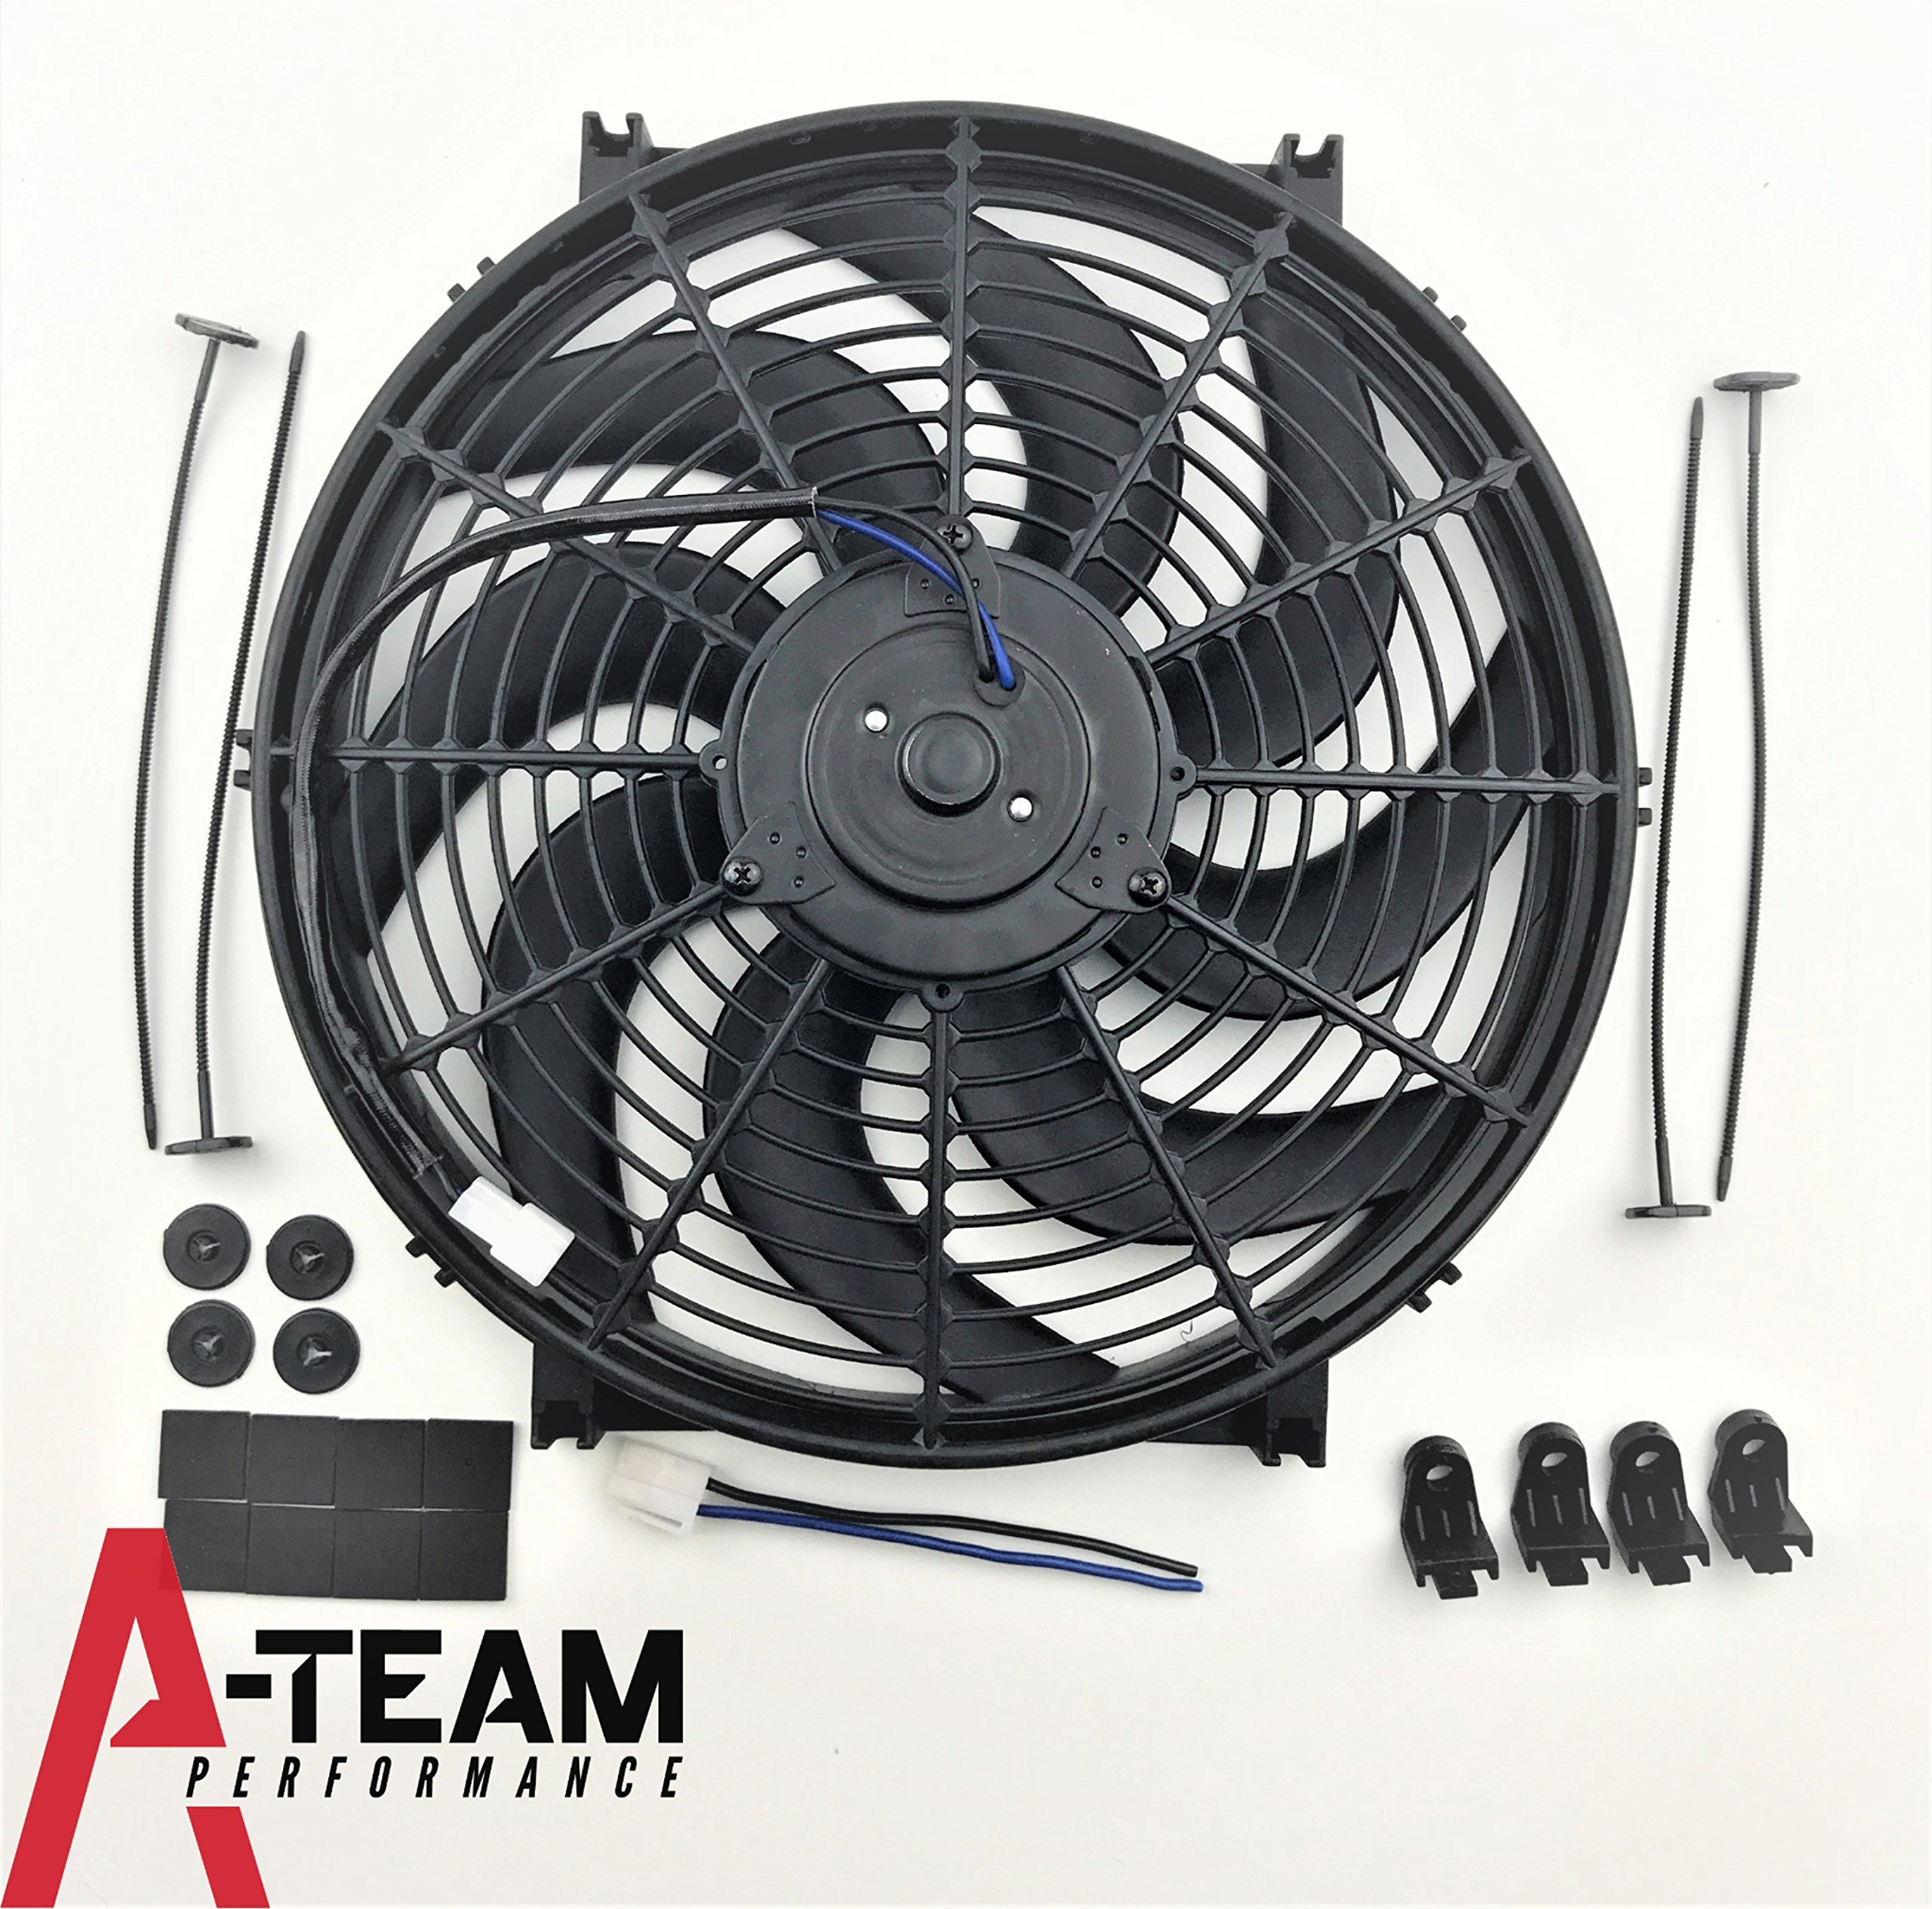 A-Team Performance 110011 14'' Heavy Duty 12V Radiator Electric Wide Curved 8 Blade FAN 2400 CFM Reversible Push or Pull with Mounting Kit